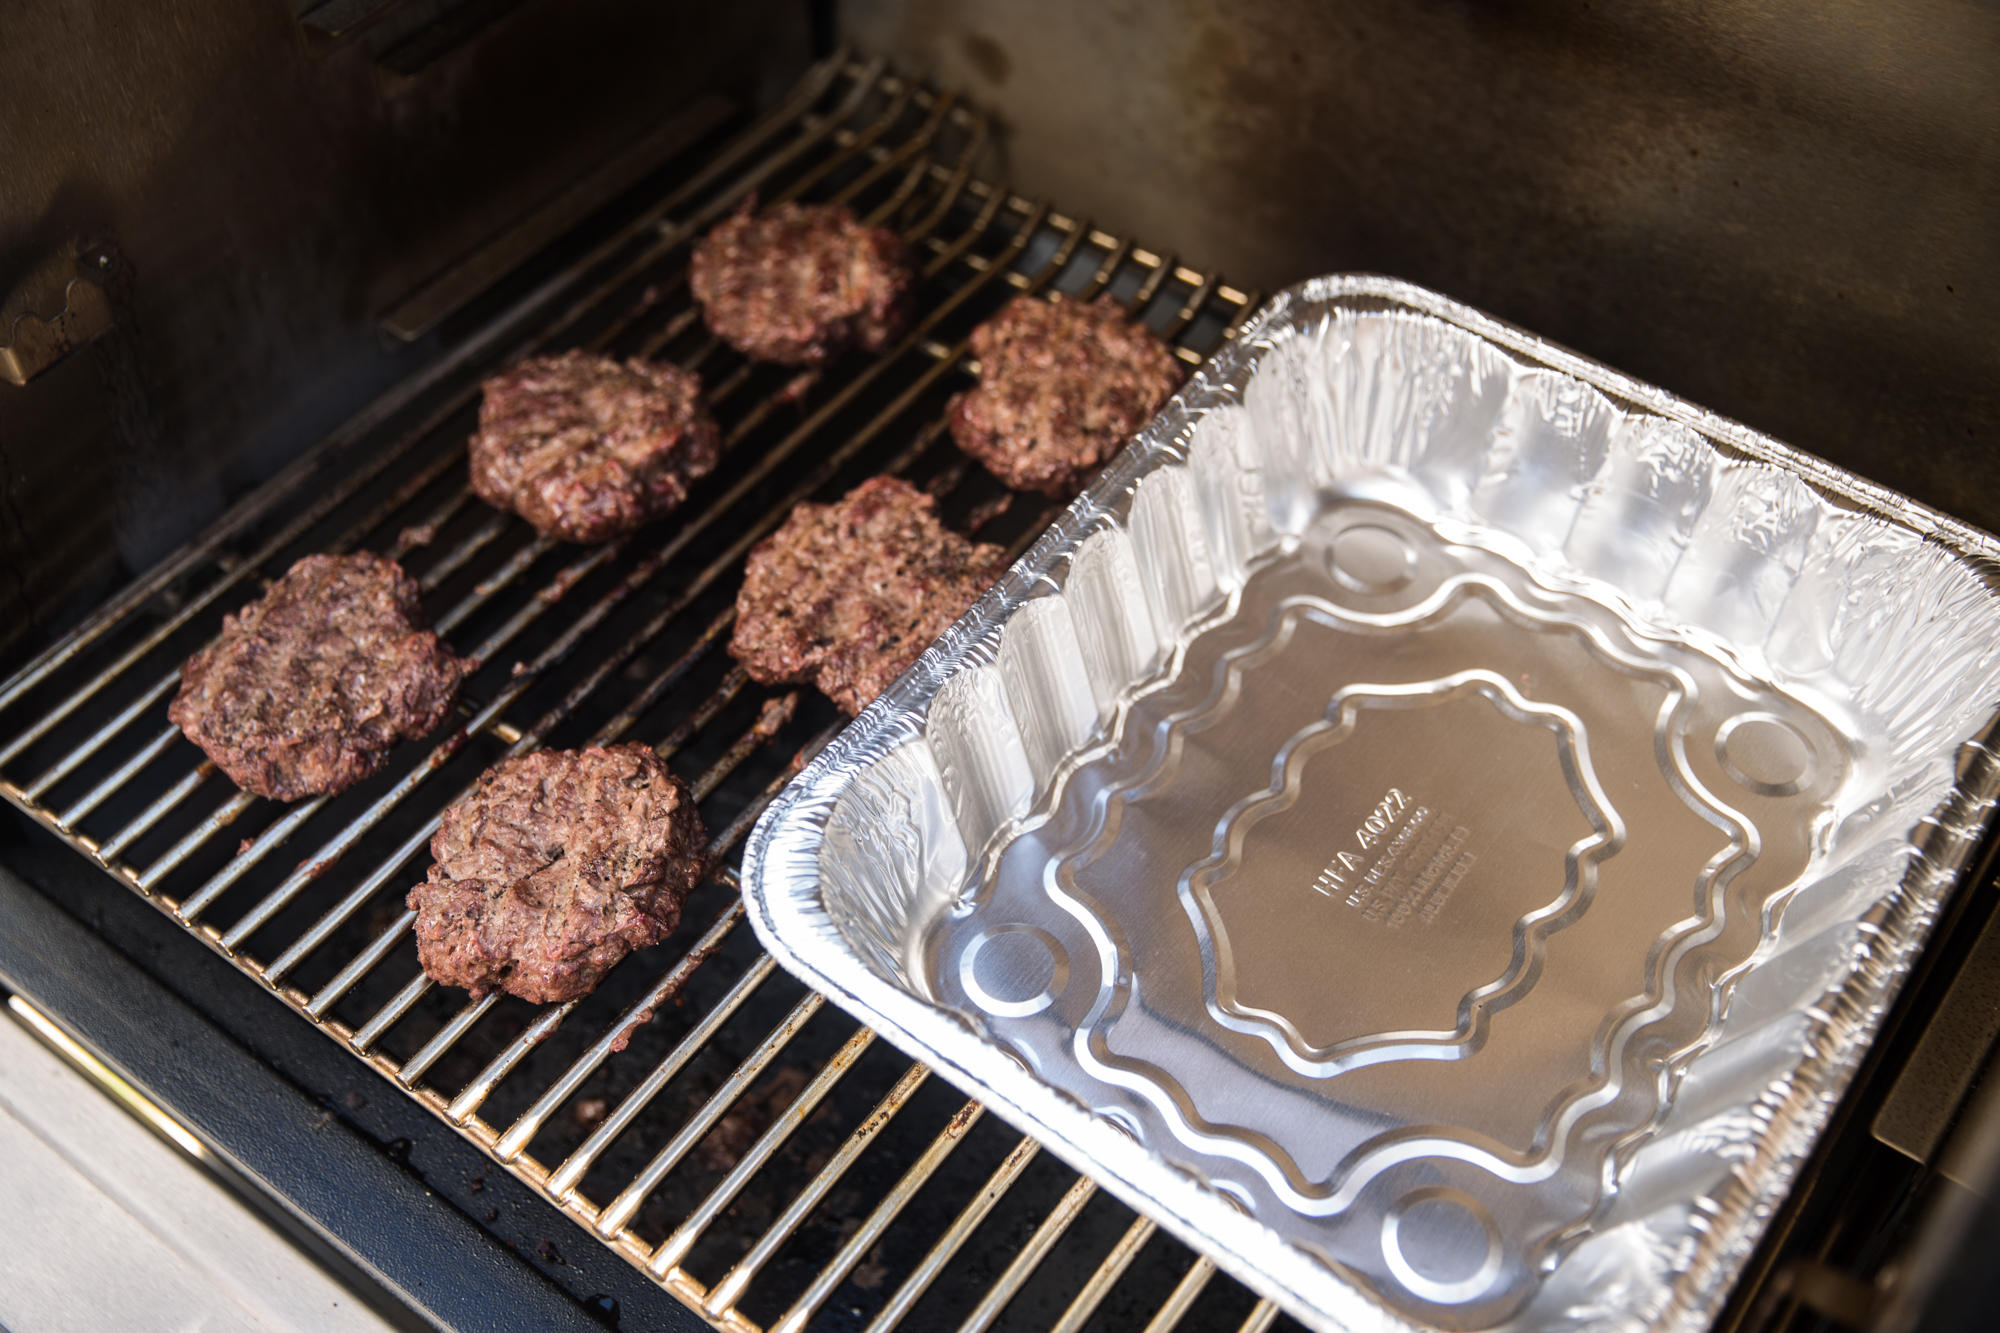 grilling-4x3-cnet-smart-home-9217-019